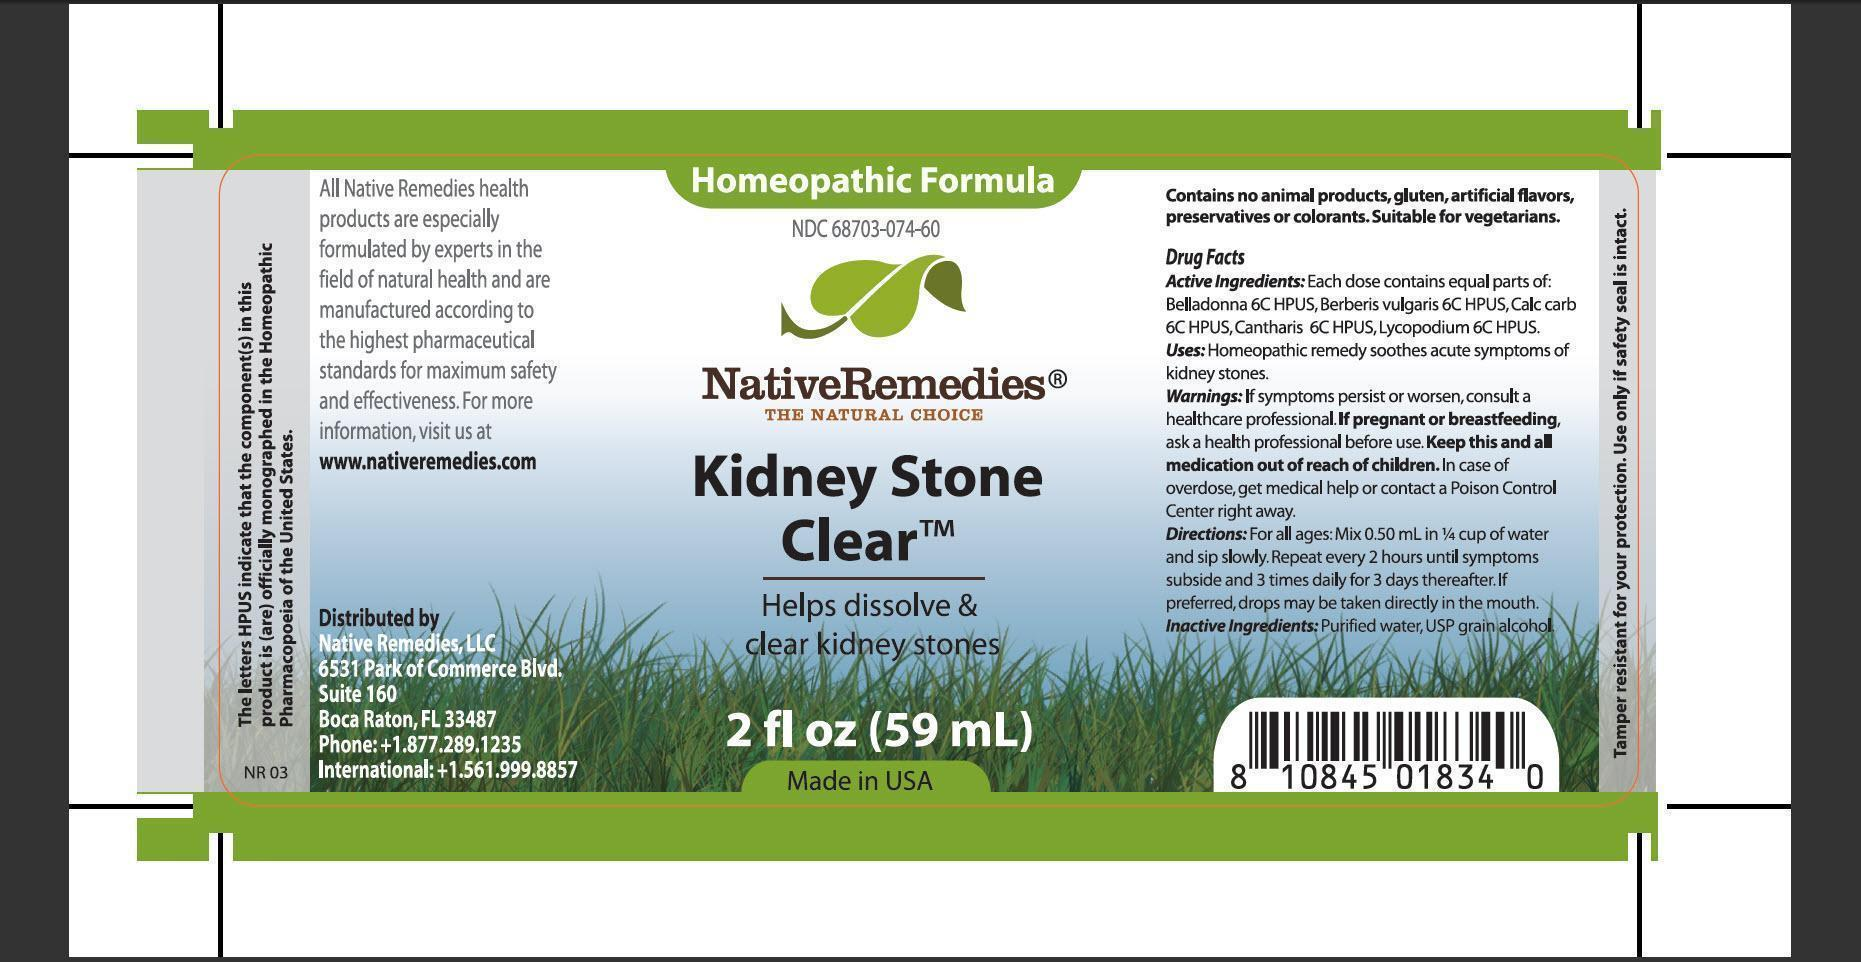 Kidney Stone Clear (Belladona, Berberis Vulgaris, Calc Carb, Cantharis, Lycopodium) Tincture [Native Remedies, Llc]